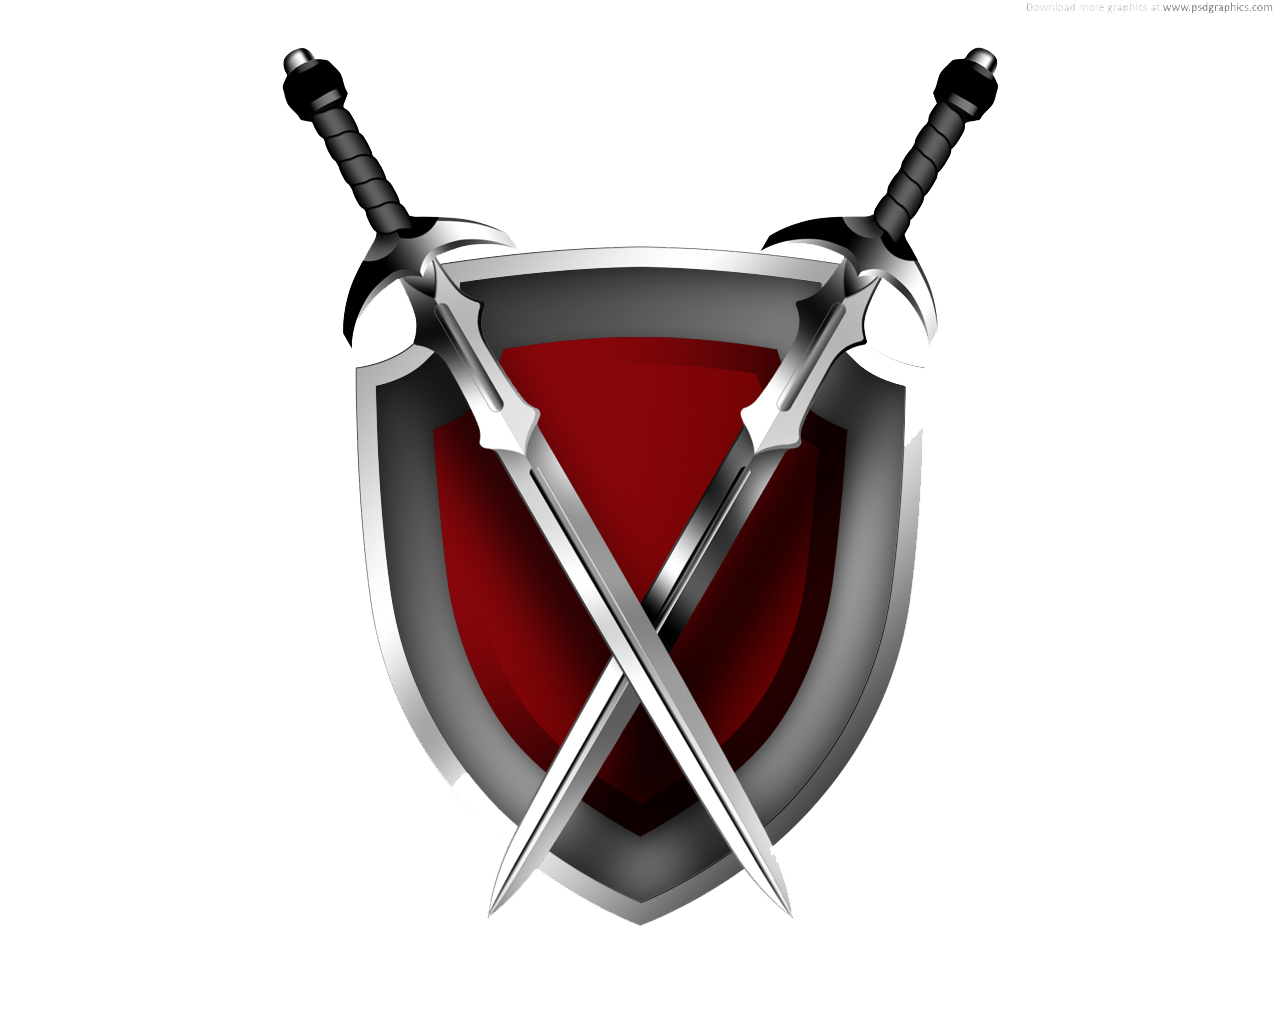 Sword clipart crossed sword. Cross png transparent image